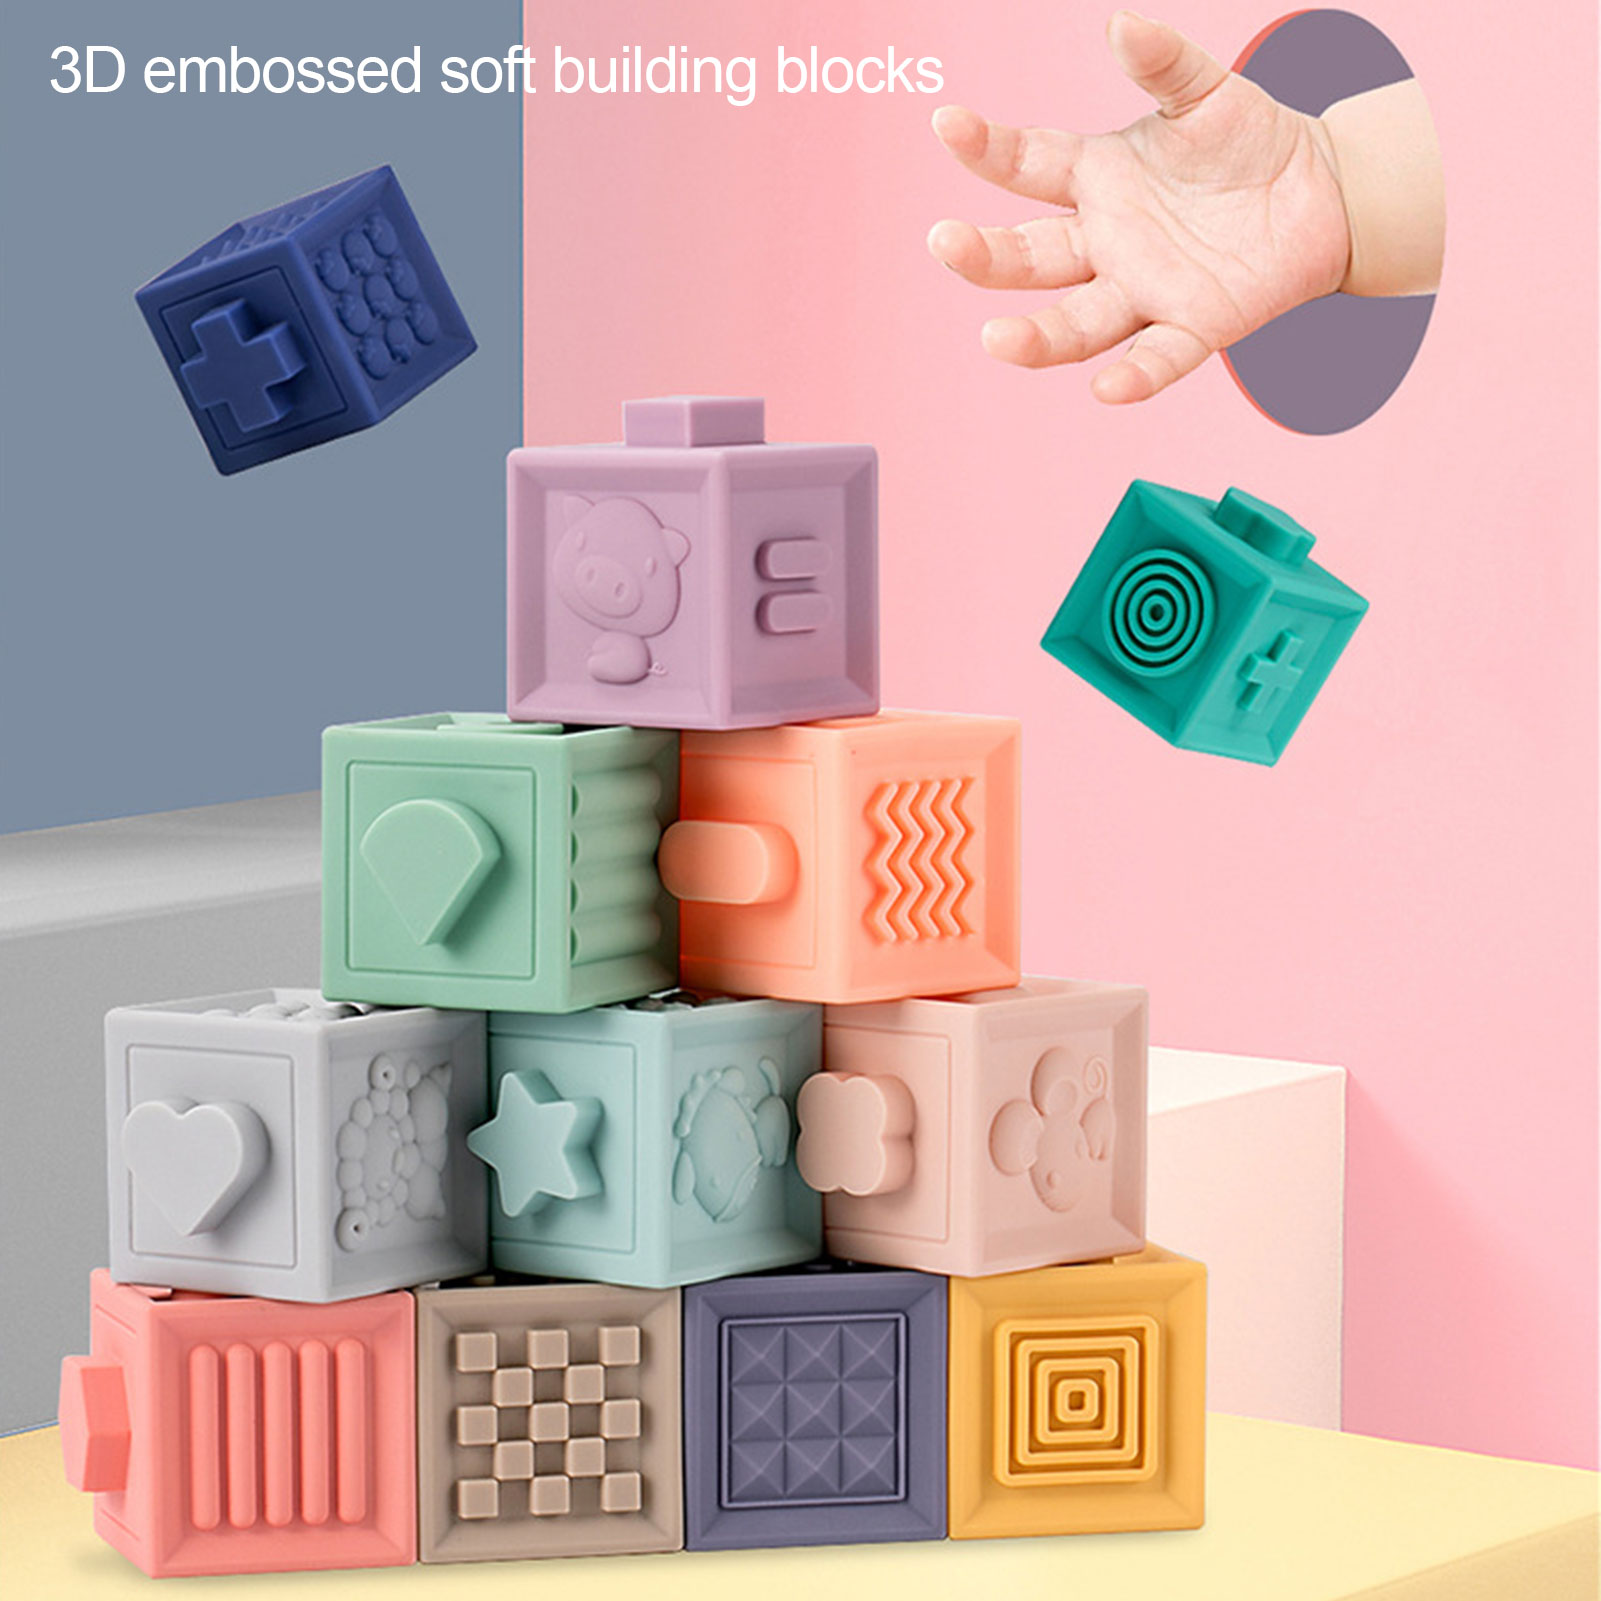 12Pcs Soft Baby Block Toddler Building Blocks High-quality PVC Materials Teething Chewing Bath Toy For 6 Months Baby